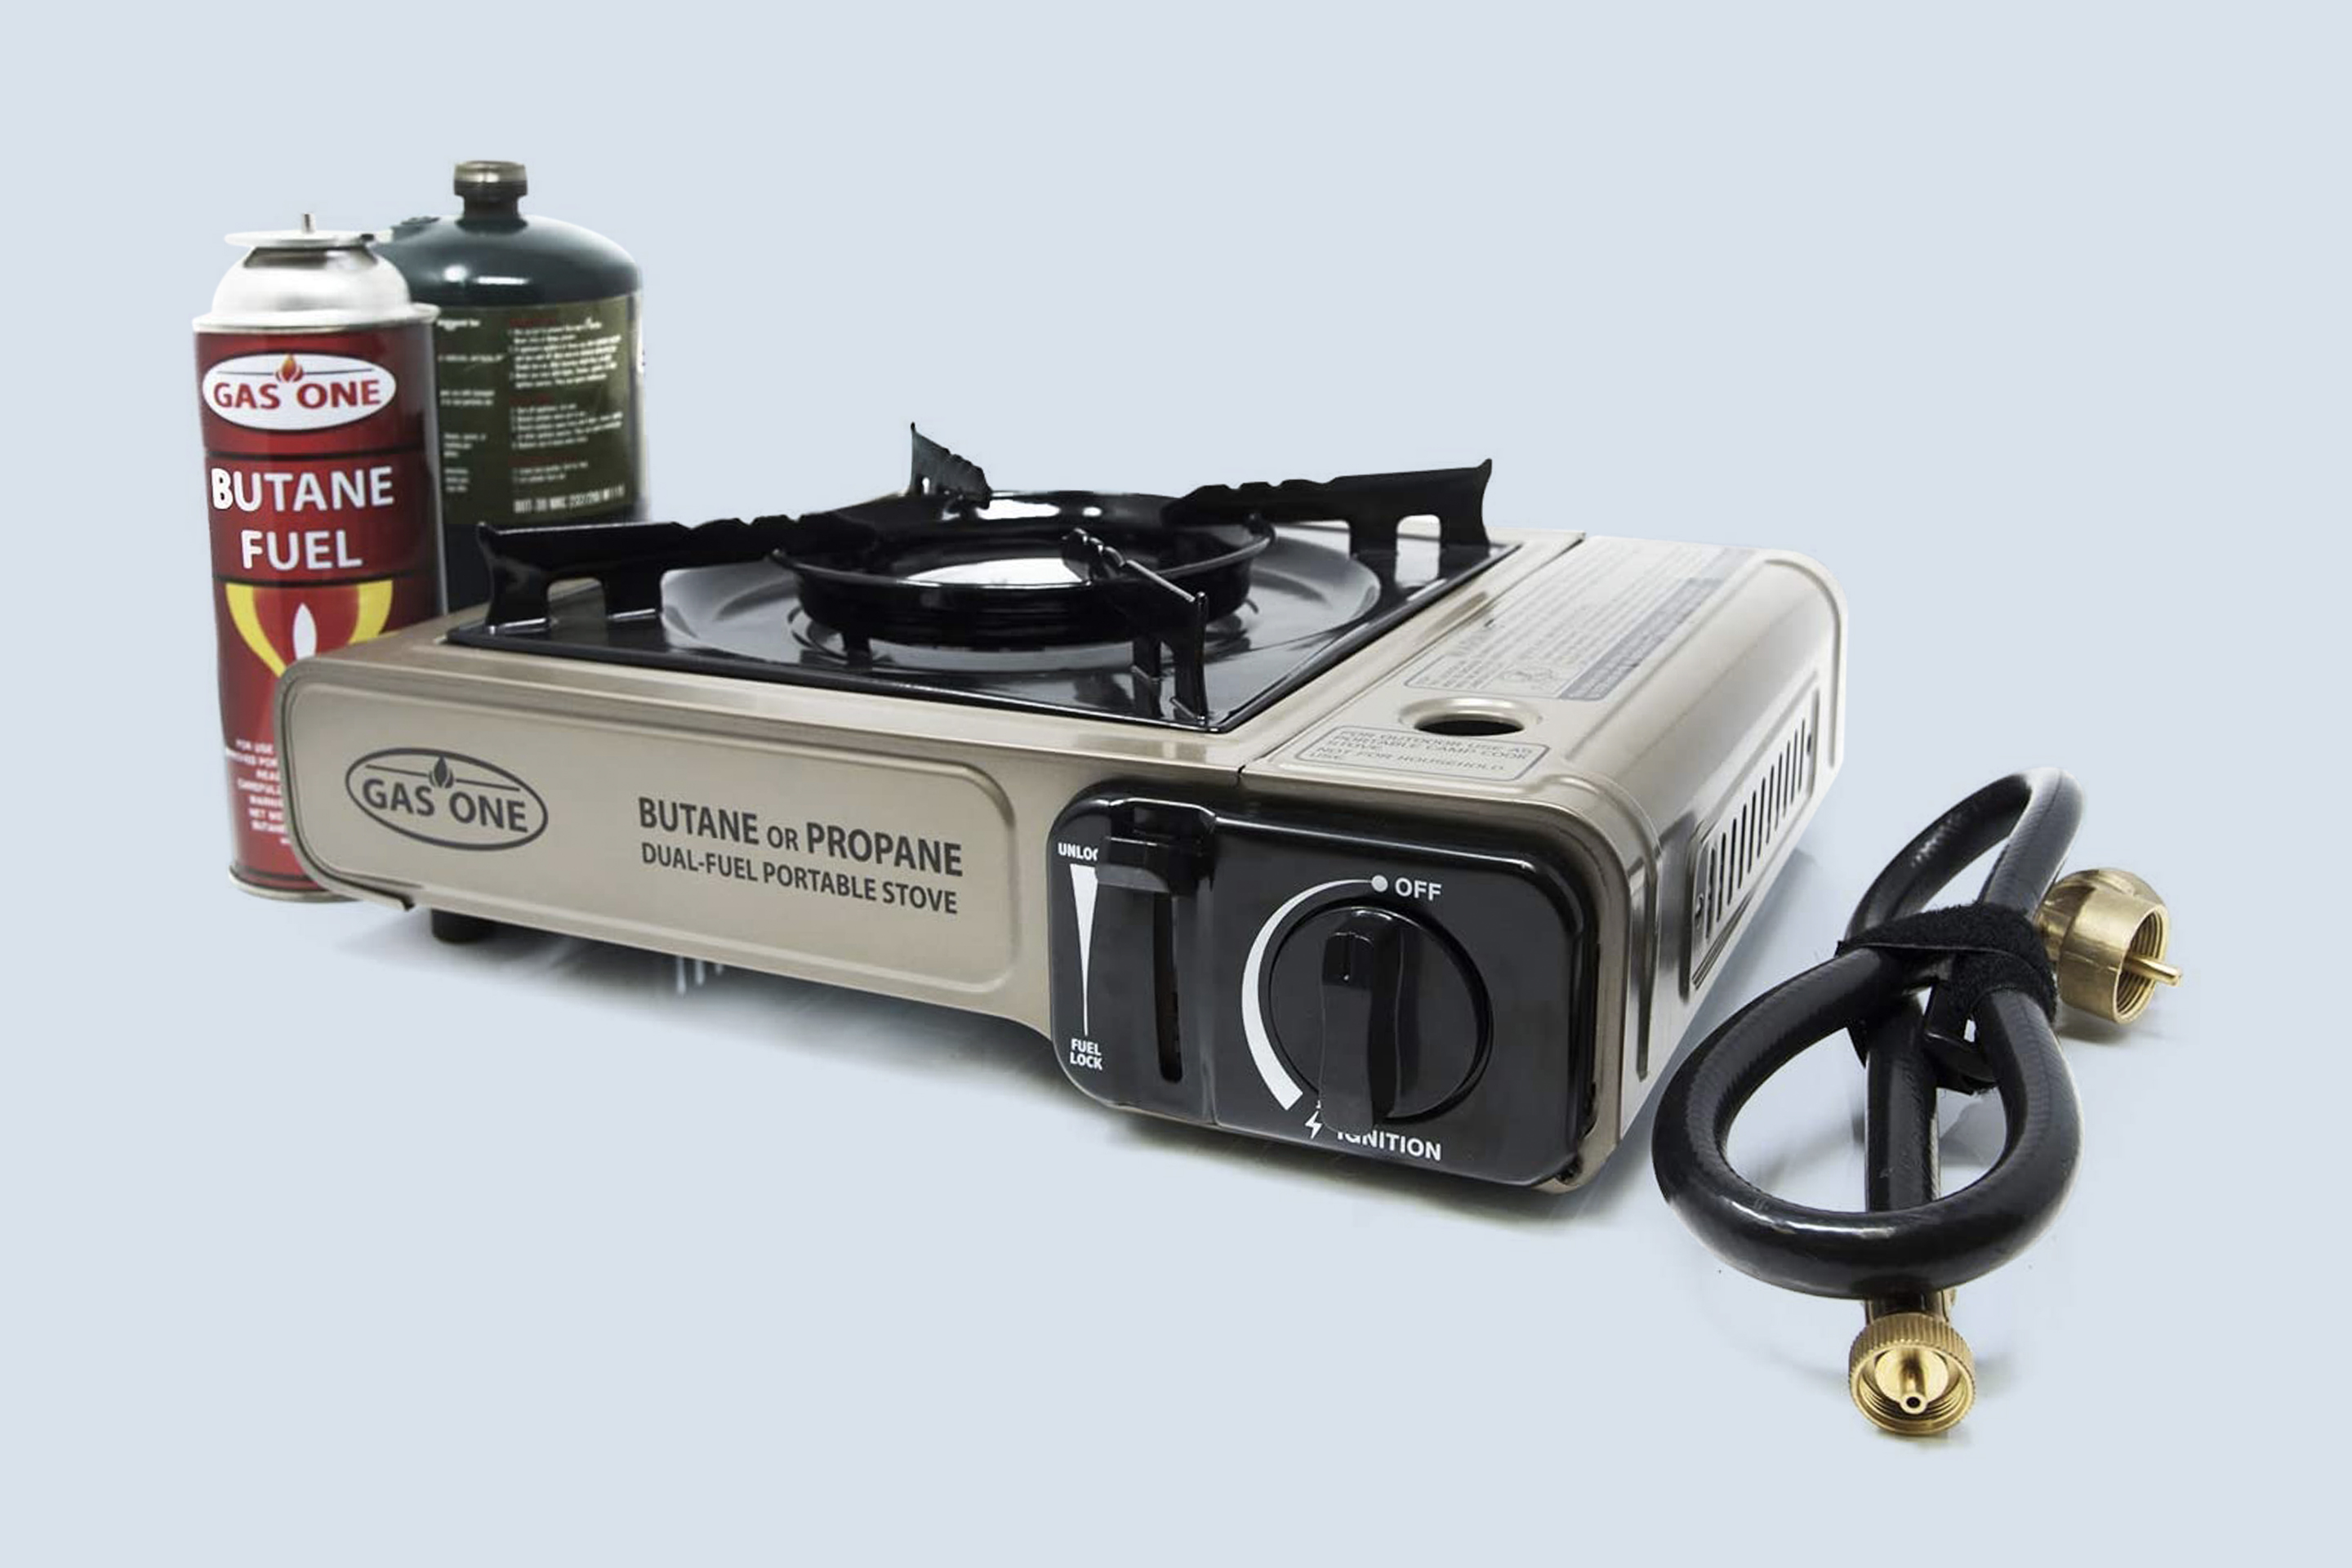 Gas ONE GS 3400P Propane Butane Stove